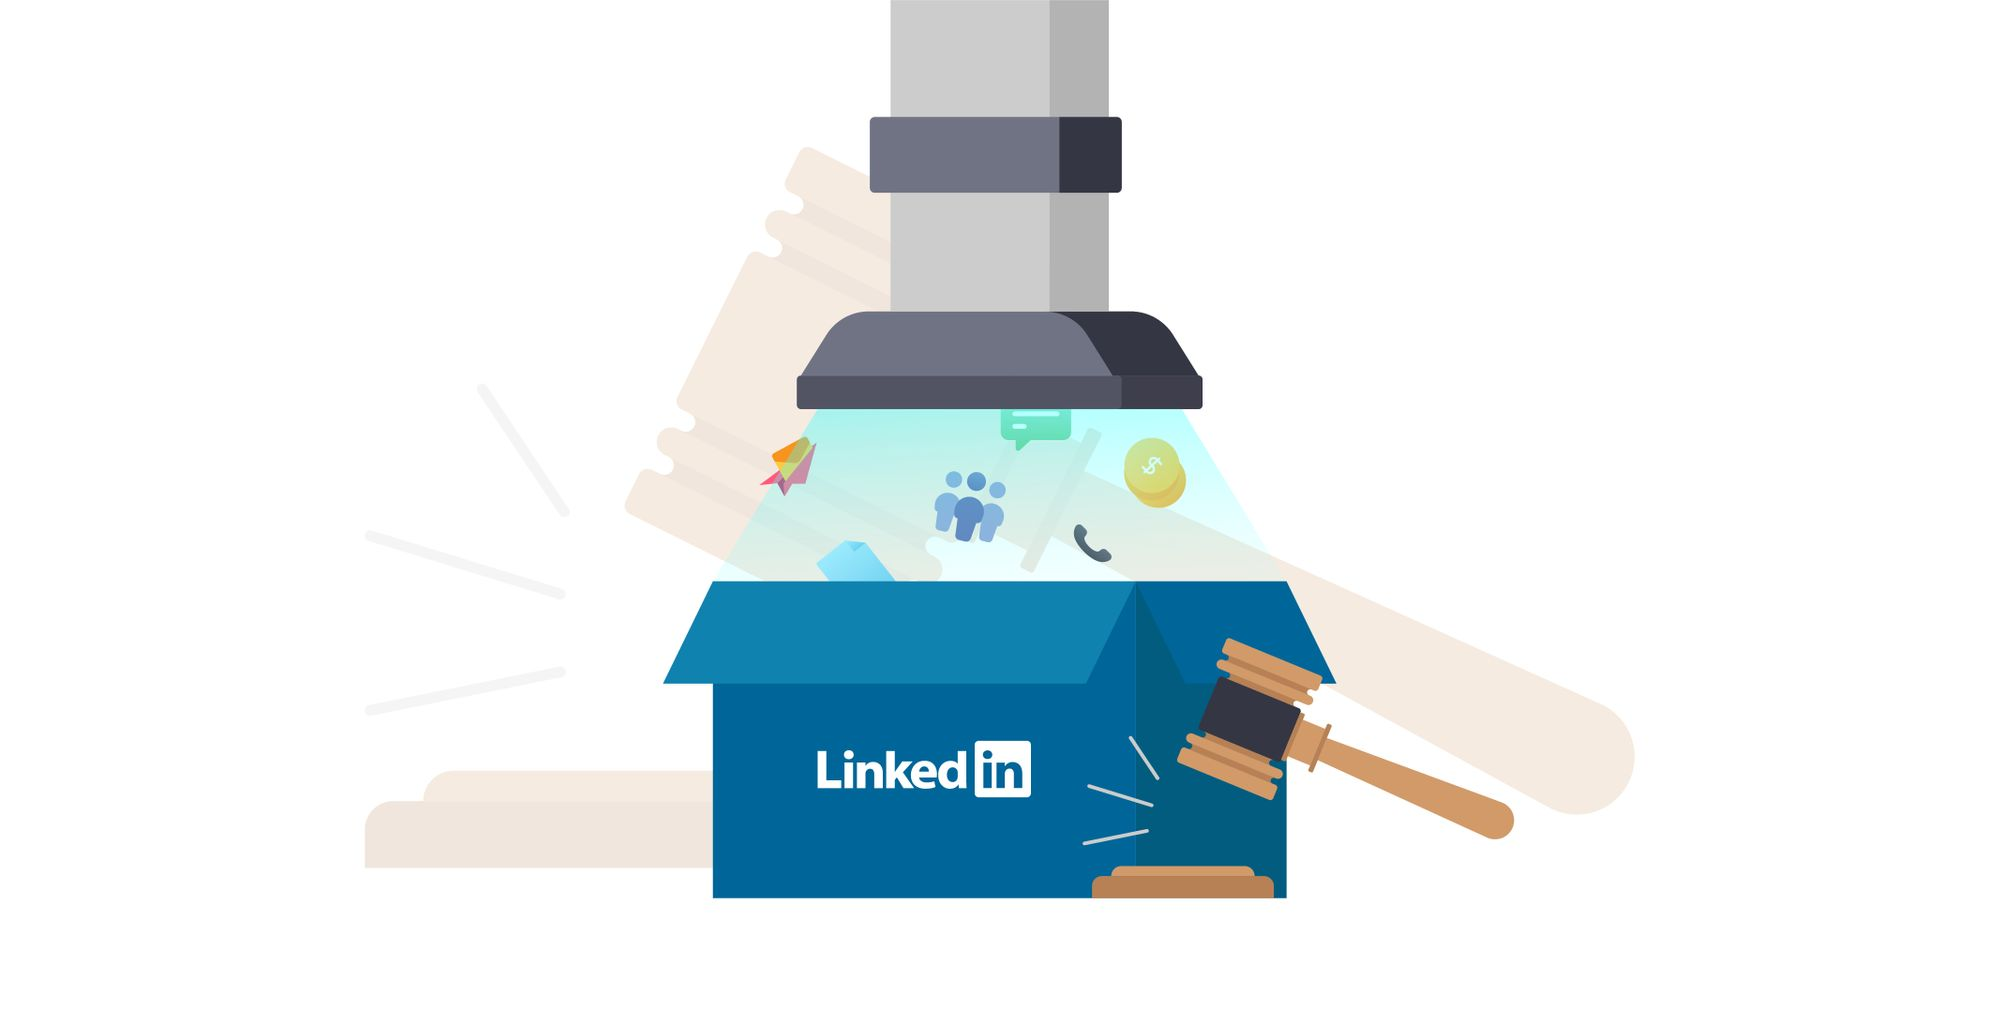 Is LinkedIn Scraping Legal?